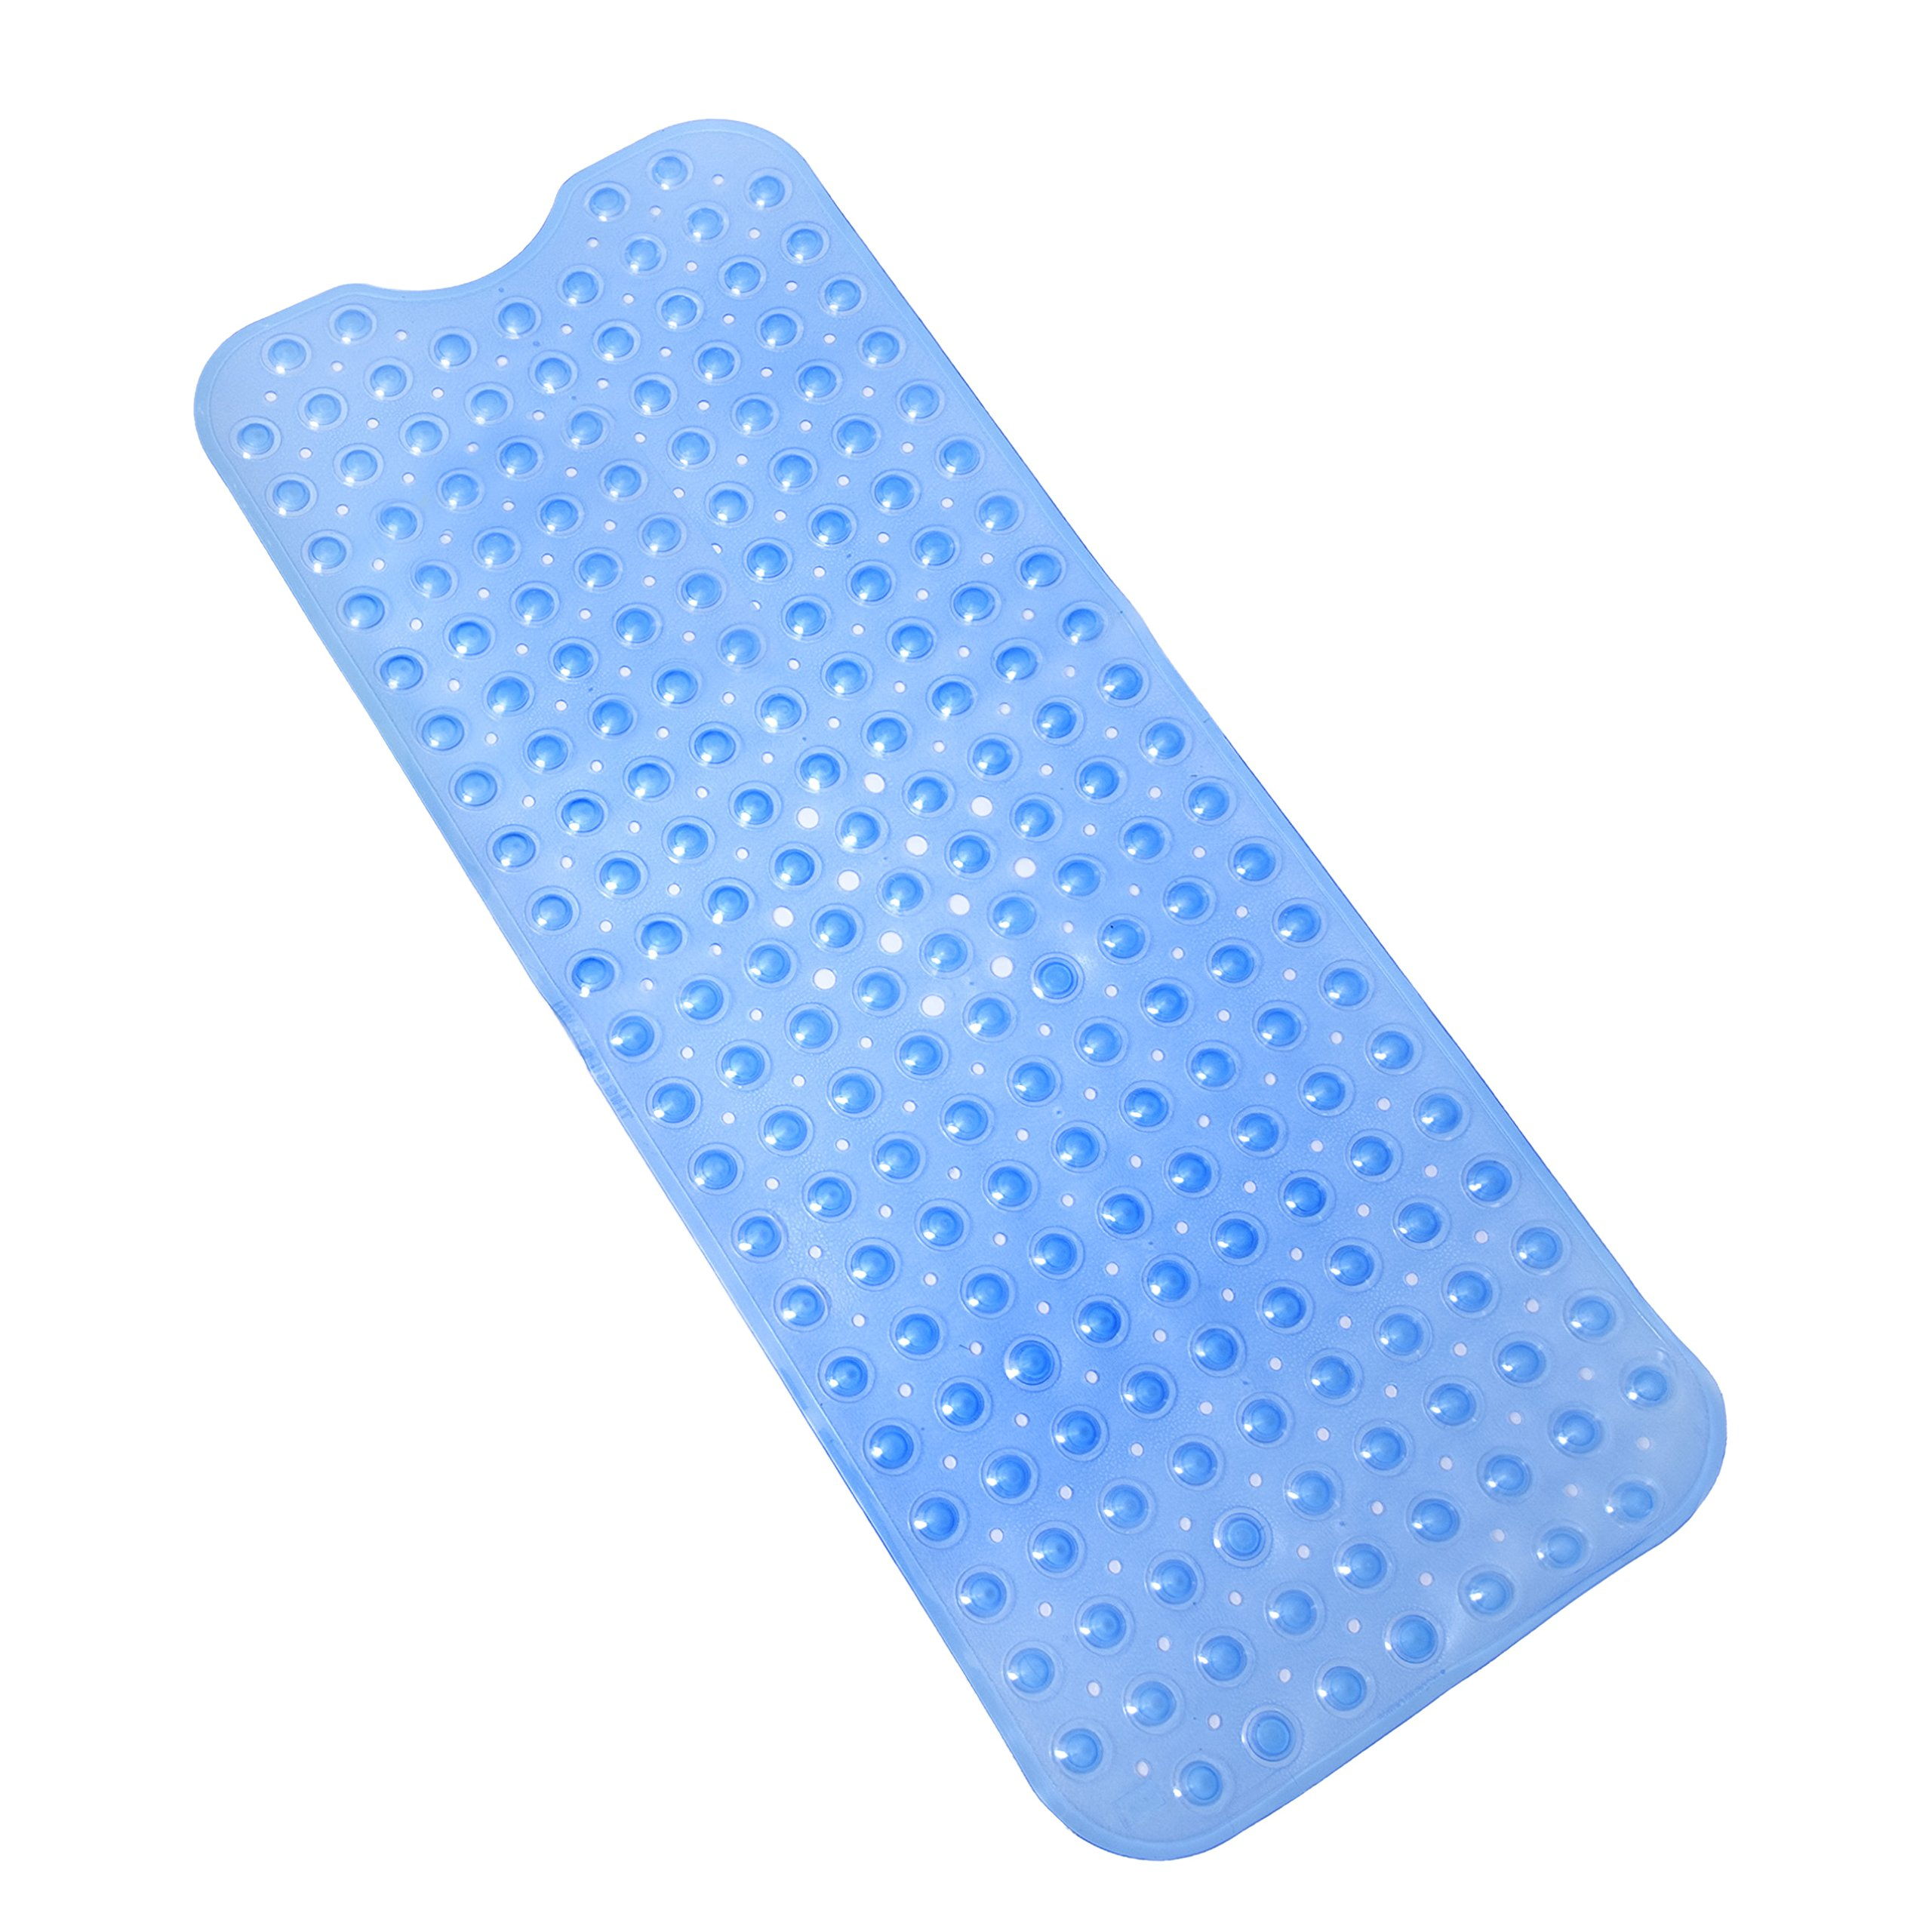 Extra Long Bathtub Mat Anti Skid Non Slip Kids Safety Bathroom ...